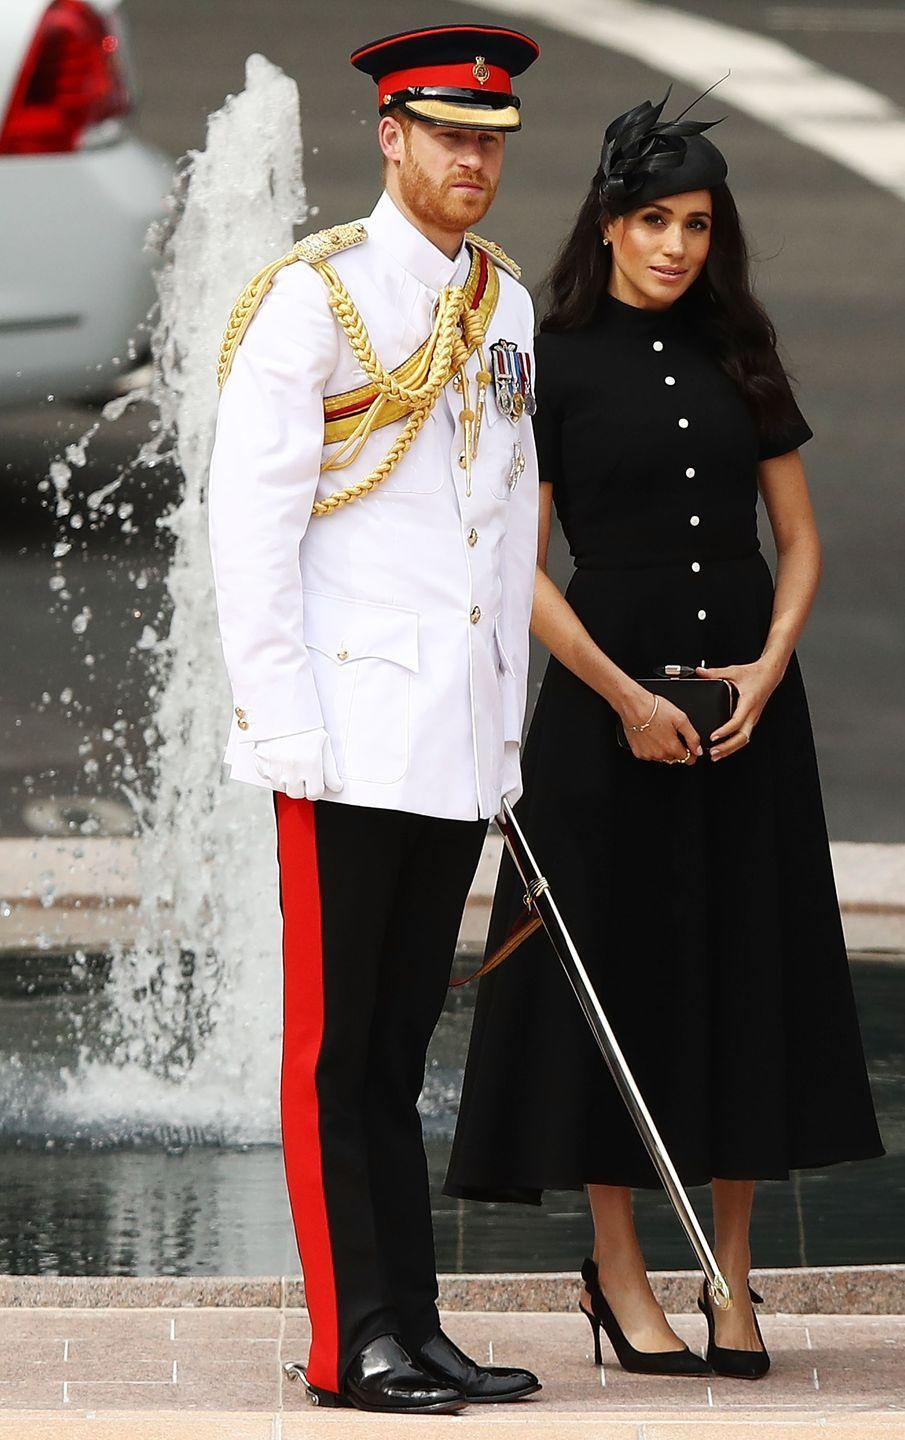 """<p>Harry and Meghan were on hand open the ANZAC memorial, which remembers Australians who served their country, during their royal tour. The Duchess wore a black Emilia Wickstead dress with Philip Treacy fascinator and Tabitha Simmons pumps. </p><p><a class=""""link rapid-noclick-resp"""" href=""""https://go.redirectingat.com?id=74968X1596630&url=https%3A%2F%2Fwww.bloomingdales.com%2Fshop%2Fproduct%2Ftabitha-simmons-womens-millie-slingback-pointed-toe-pumps%3FID%3D2956738&sref=https%3A%2F%2Fwww.townandcountrymag.com%2Fstyle%2Ffashion-trends%2Fg3272%2Fmeghan-markle-preppy-style%2F"""" rel=""""nofollow noopener"""" target=""""_blank"""" data-ylk=""""slk:SHOP NOW"""">SHOP NOW</a> <em>Millie Slingback Pumps by Tabitha Simmons, $695</em></p>"""